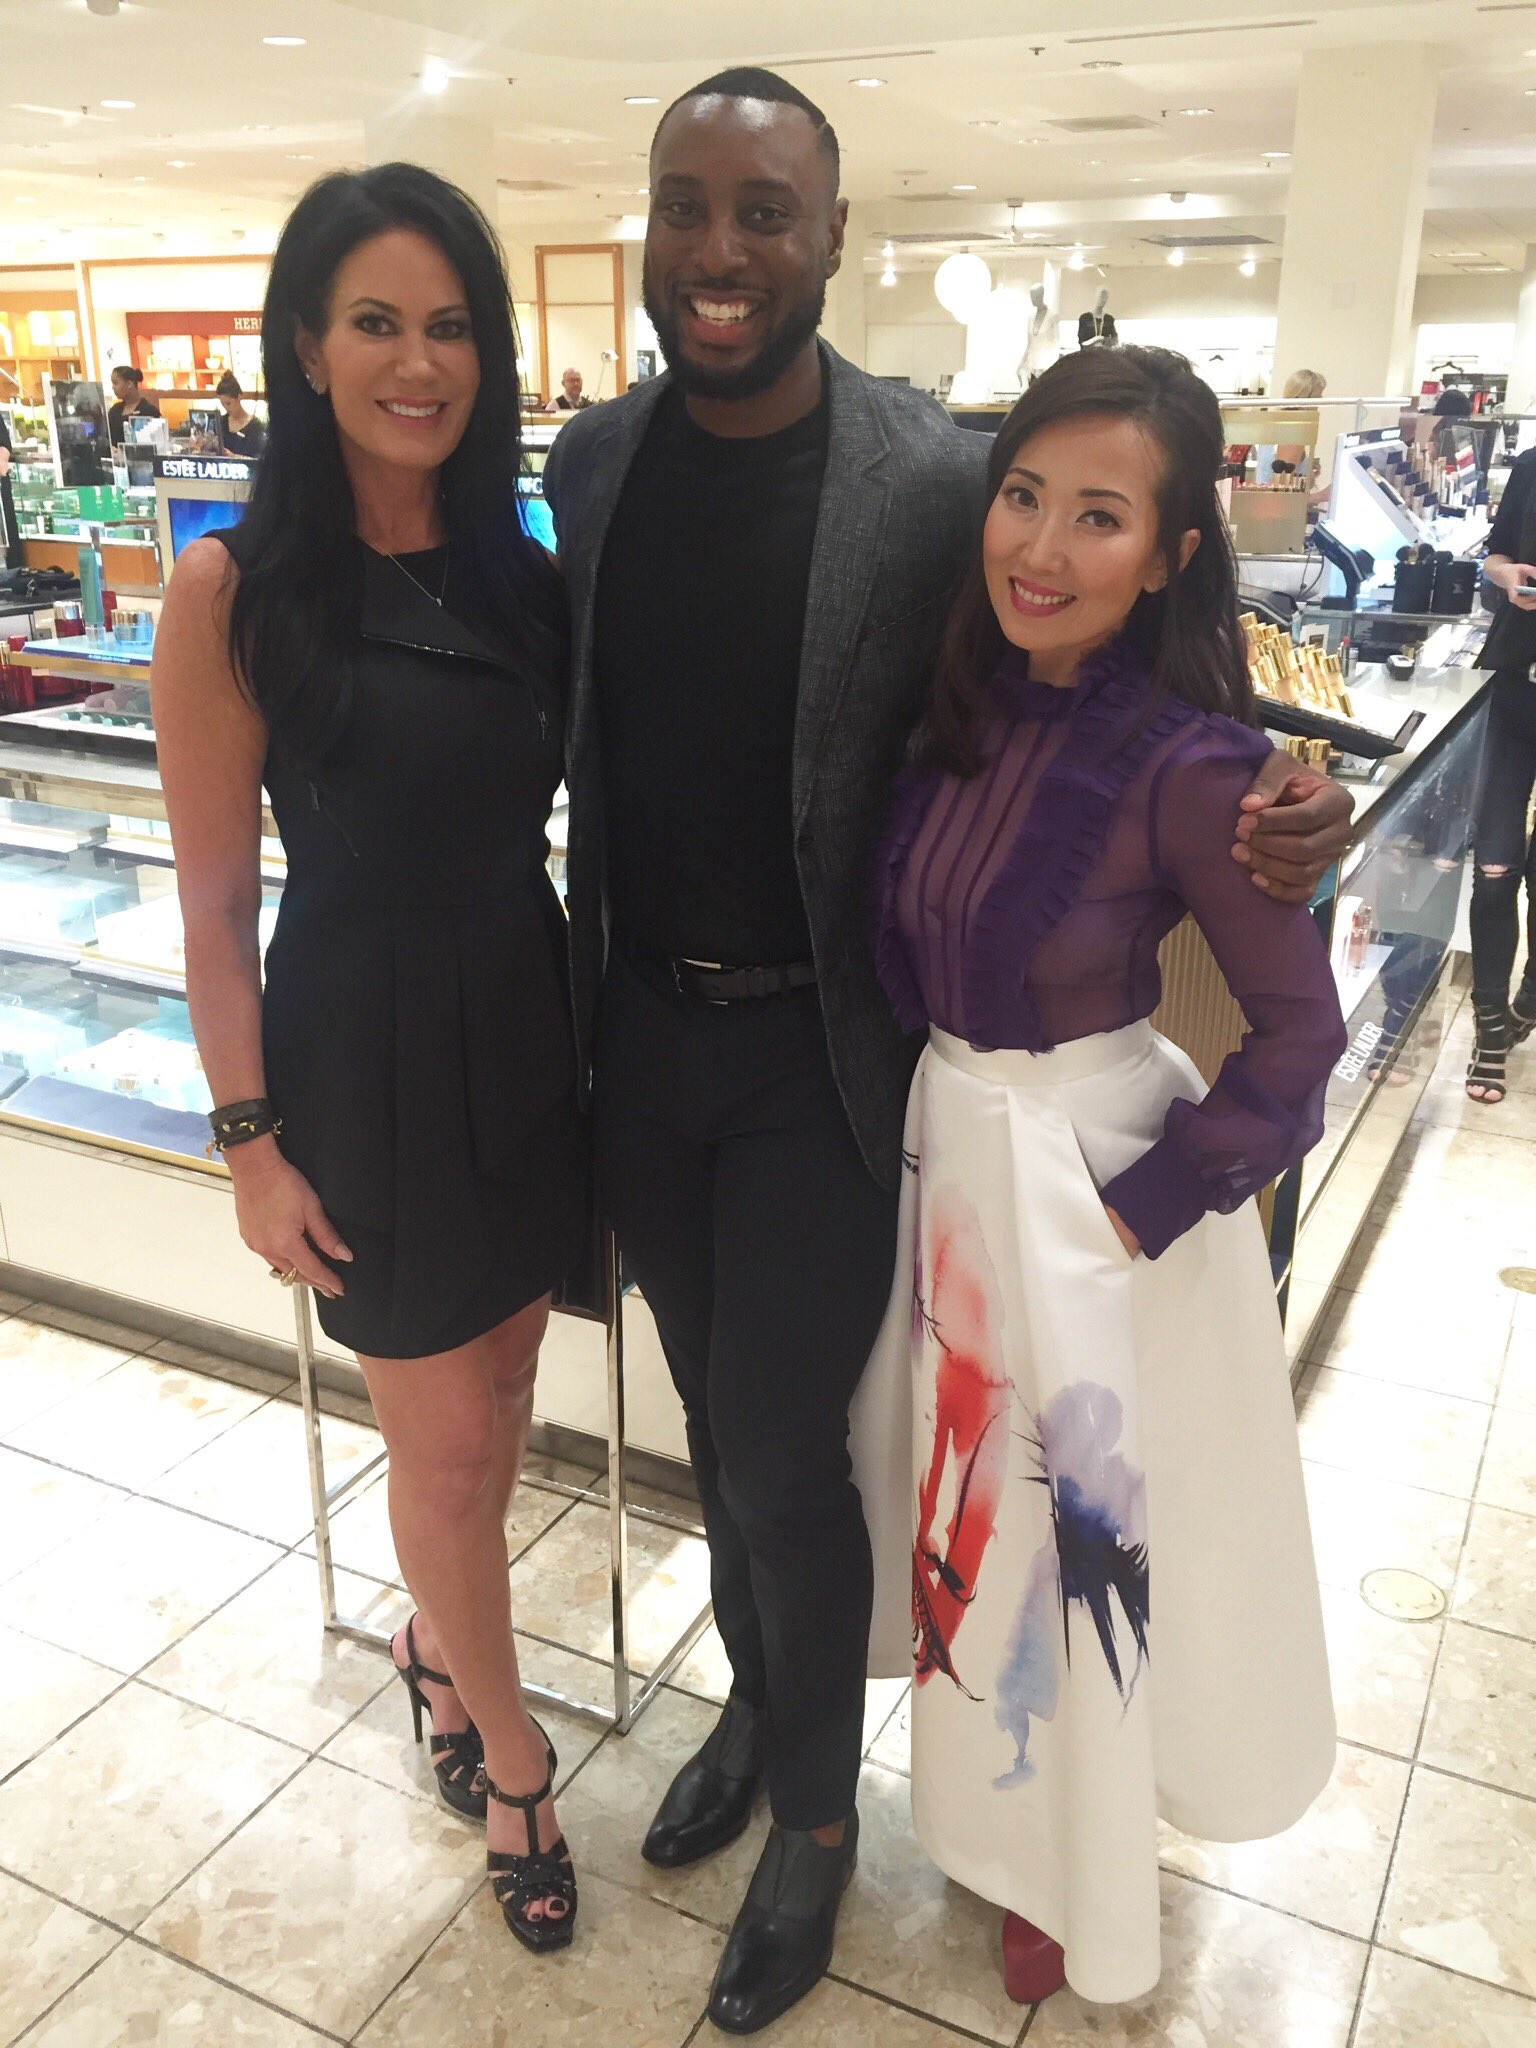 Leslie Prow, Sales & Education Executive for @EsteeLauder, with Gregory Lawrence and Tina Craig. #NMbeauty #NMevents https://t.co/skCo6zsEeC